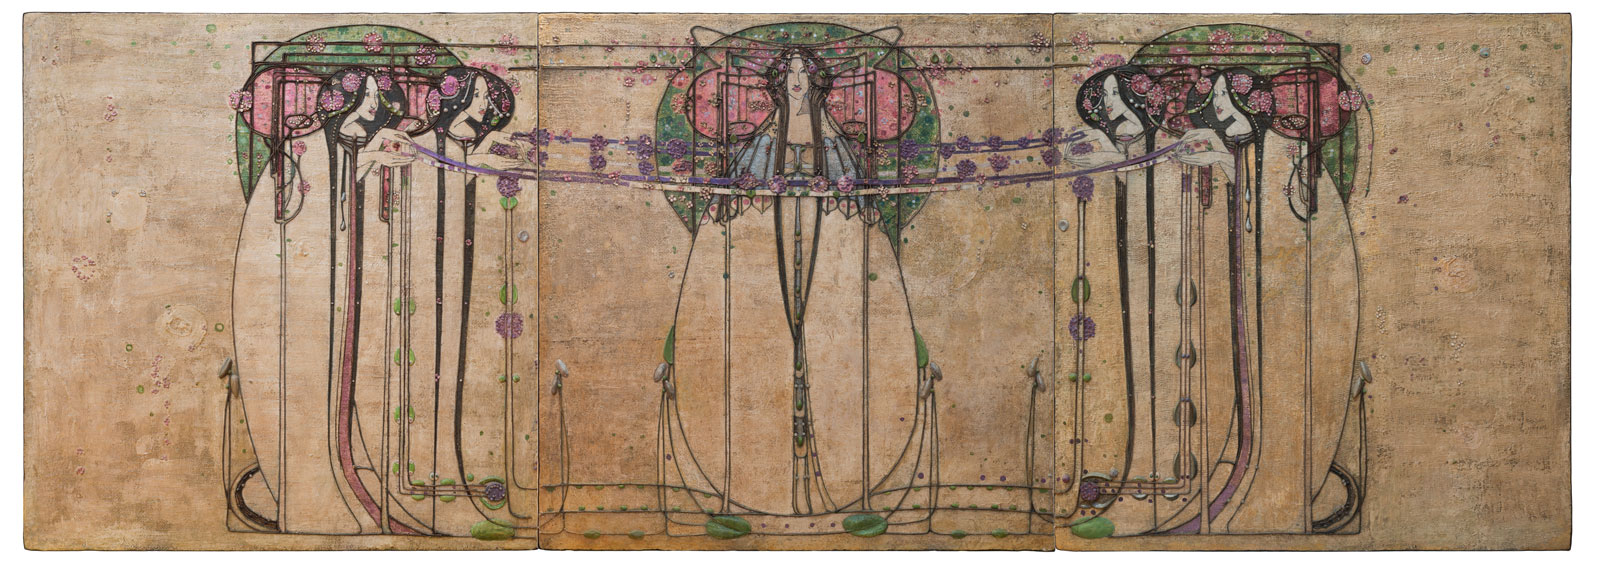 Margaret Macdonald Mackintosh, The May Queen: Panel for the Ladies' Luncheon Room, Ingram Street Tearooms, Glasgow, 1900. Gesso, hessian, scrim, twine, glass beads, thread, mother-of-pearl, tin leaf. © CSG CIC Glasgow Museums Collection. Courtesy American Federation of Arts. Designing the New: Charles Rennie Mackintosh and the Glasgow Style